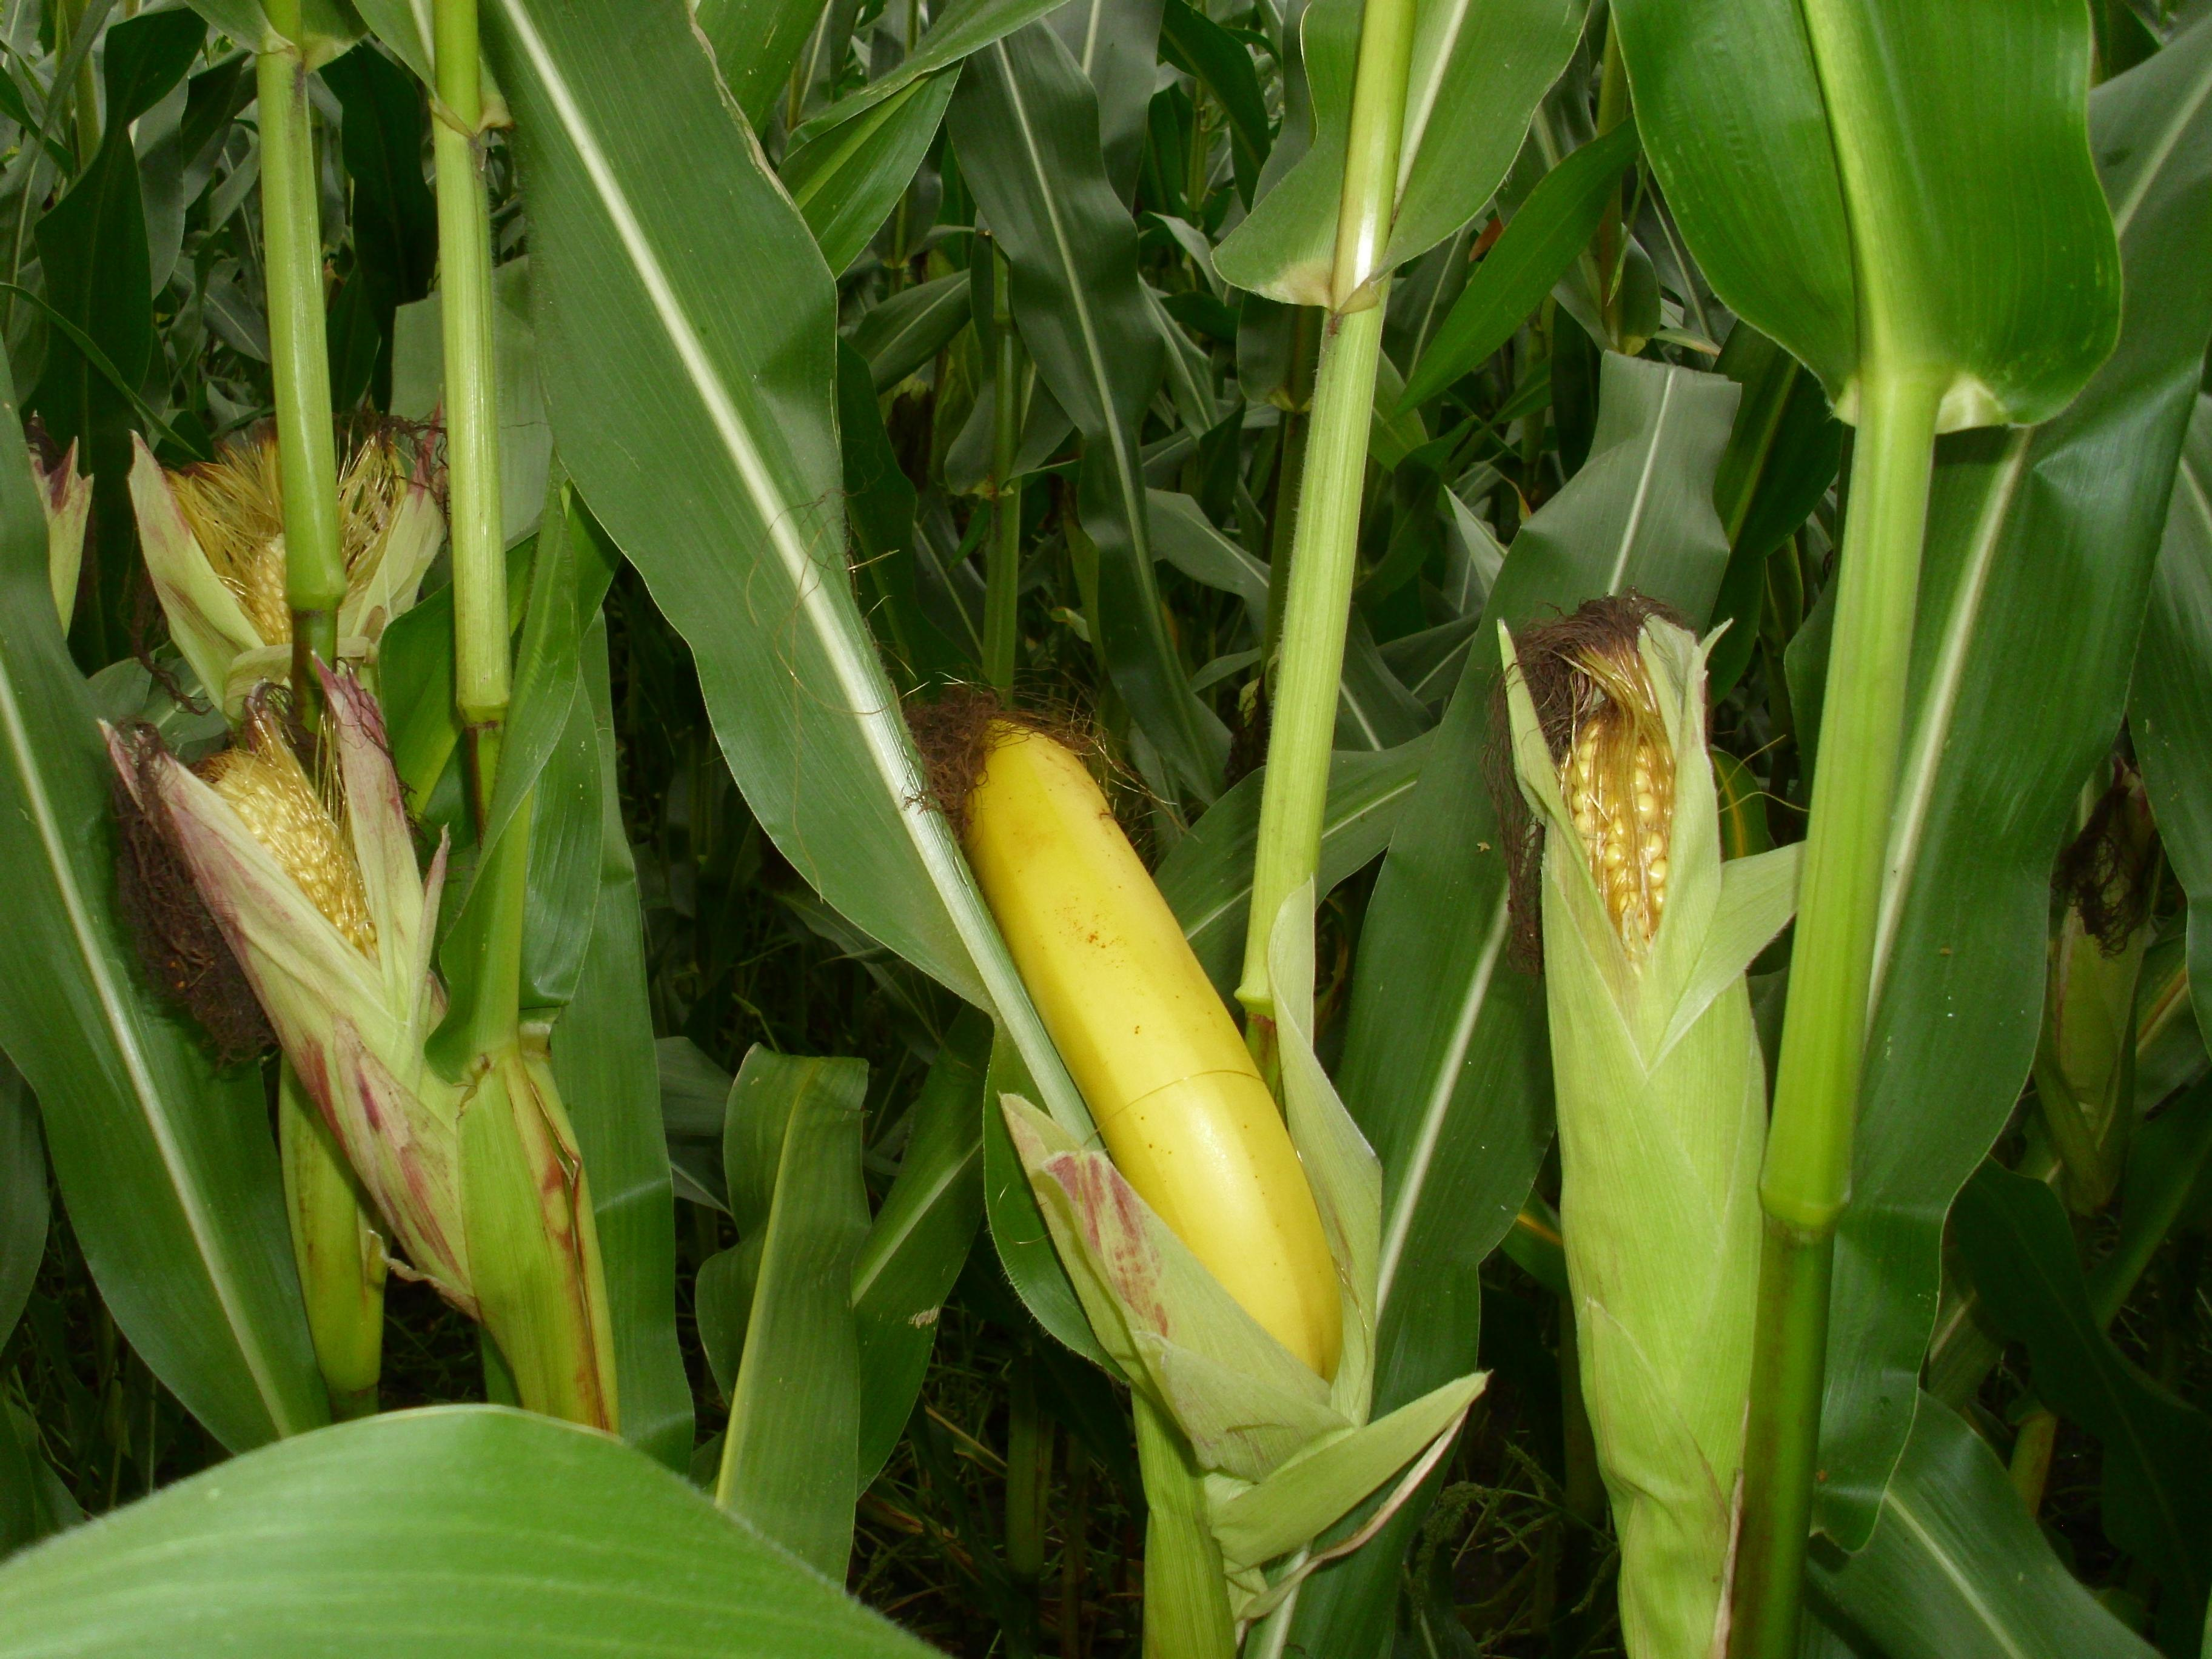 Why Corn Ethanol is Bad for the Environment